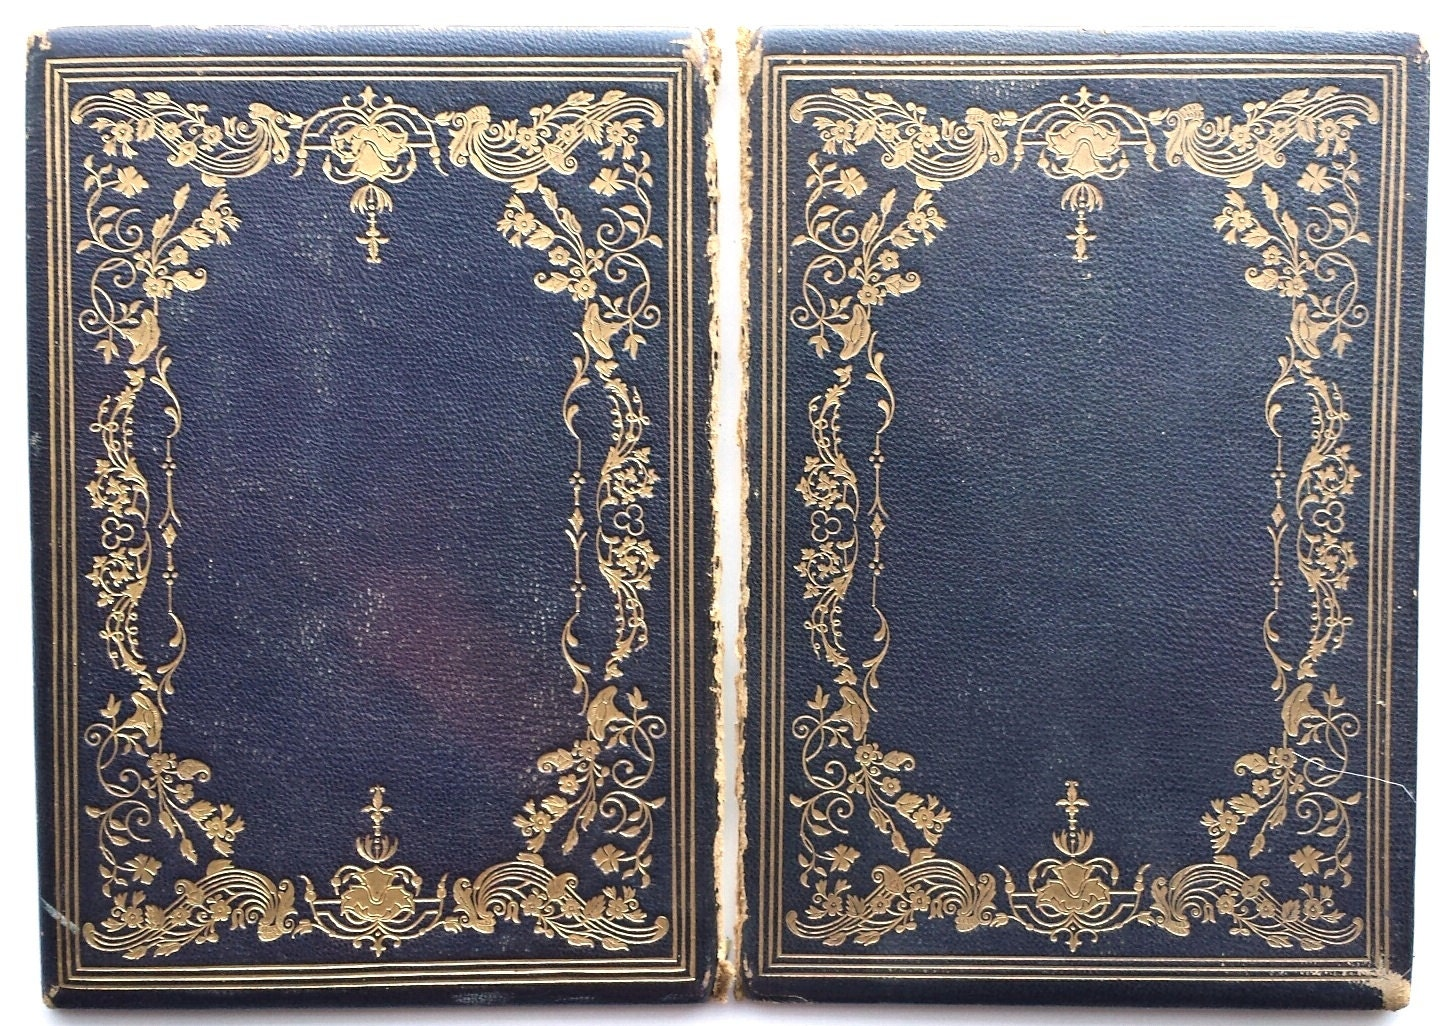 Vintage Leather Book Cover : Fancy antique leather book covers